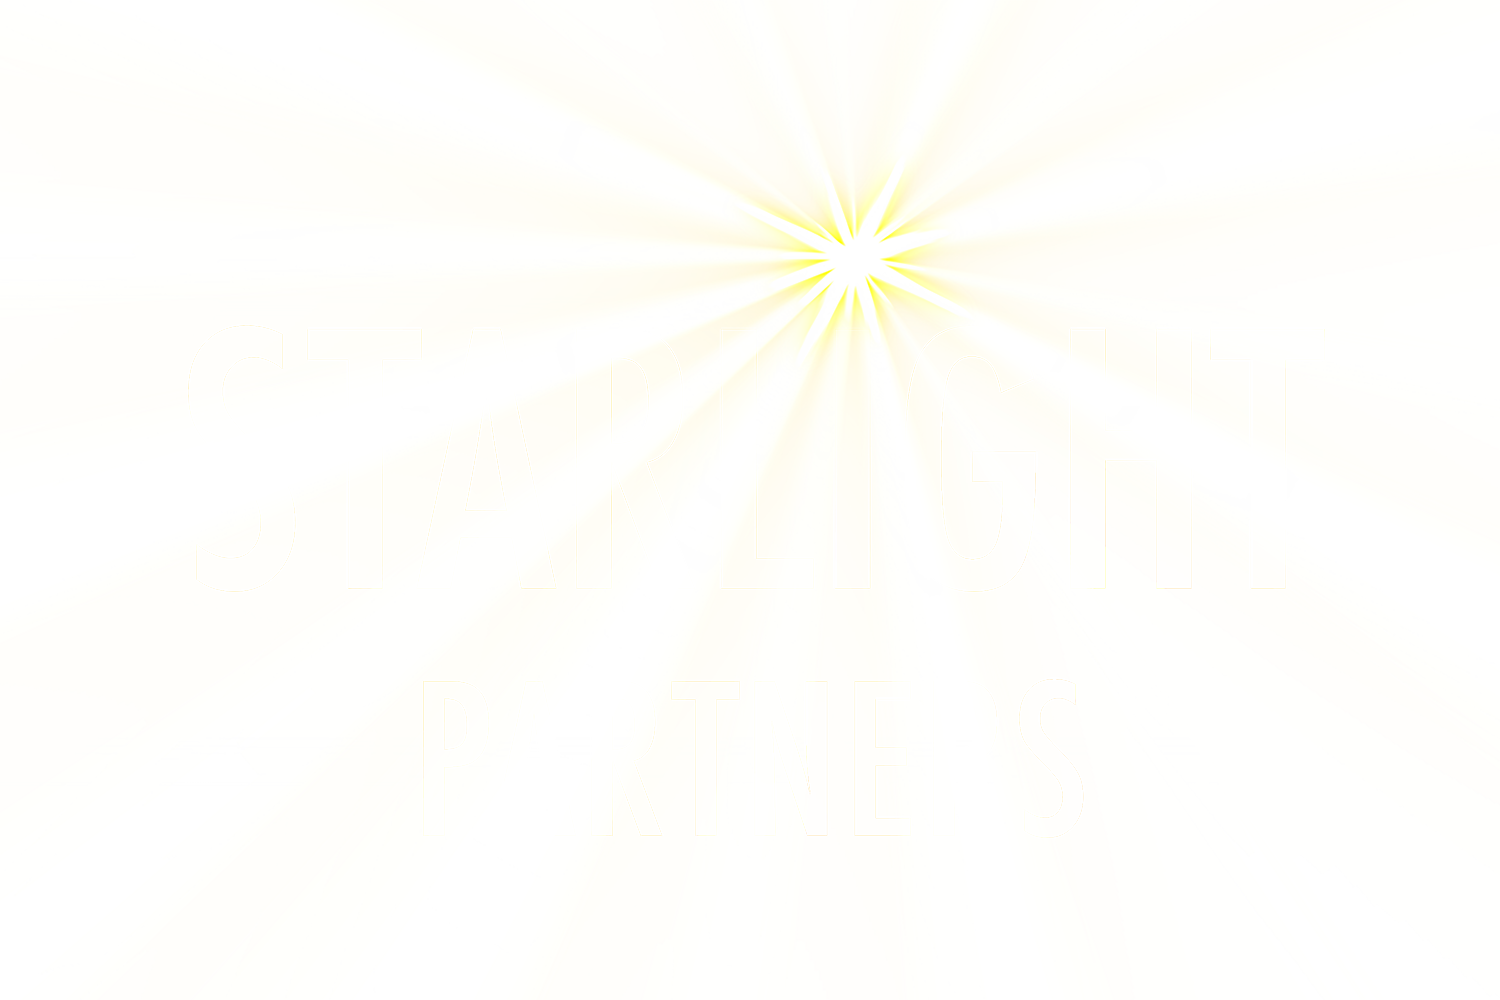 Starlight Partners